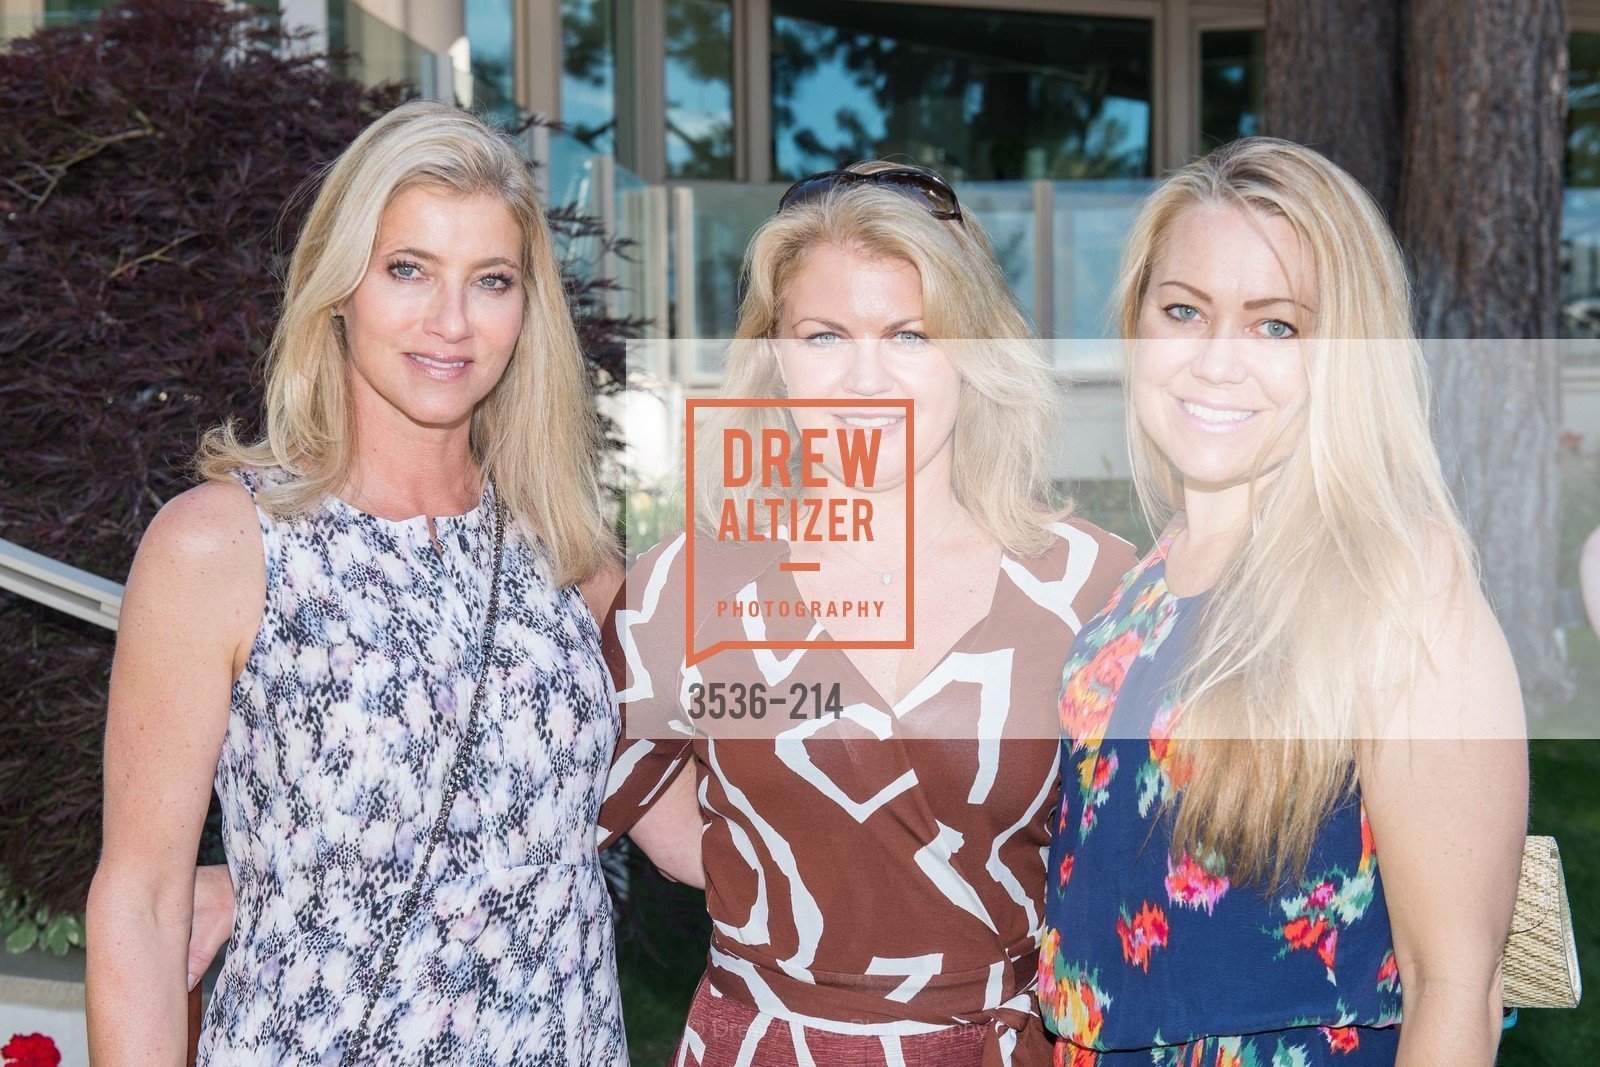 Tammy Pioch, Heidi Bertagnolli, Saks Fifth Avenue and The League to Save Lake Tahoe Present Fashion on the Lake, Private Residence, August 1st, 2015,Drew Altizer, Drew Altizer Photography, full-service agency, private events, San Francisco photographer, photographer california